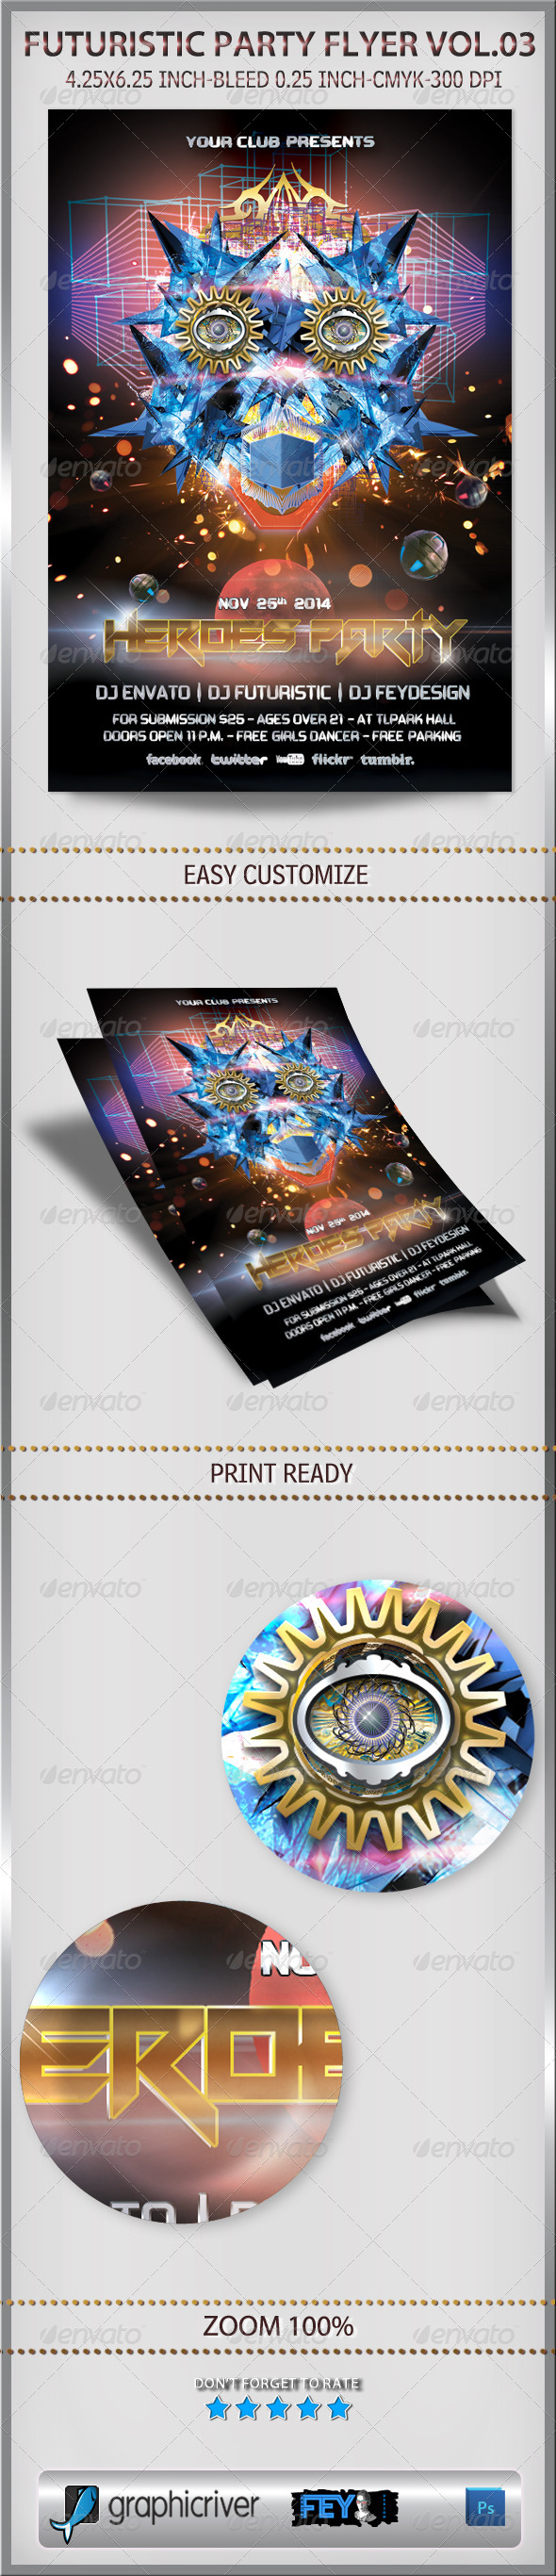 Futuristic Party Flyer Vol.03 - Flyers Print Templates